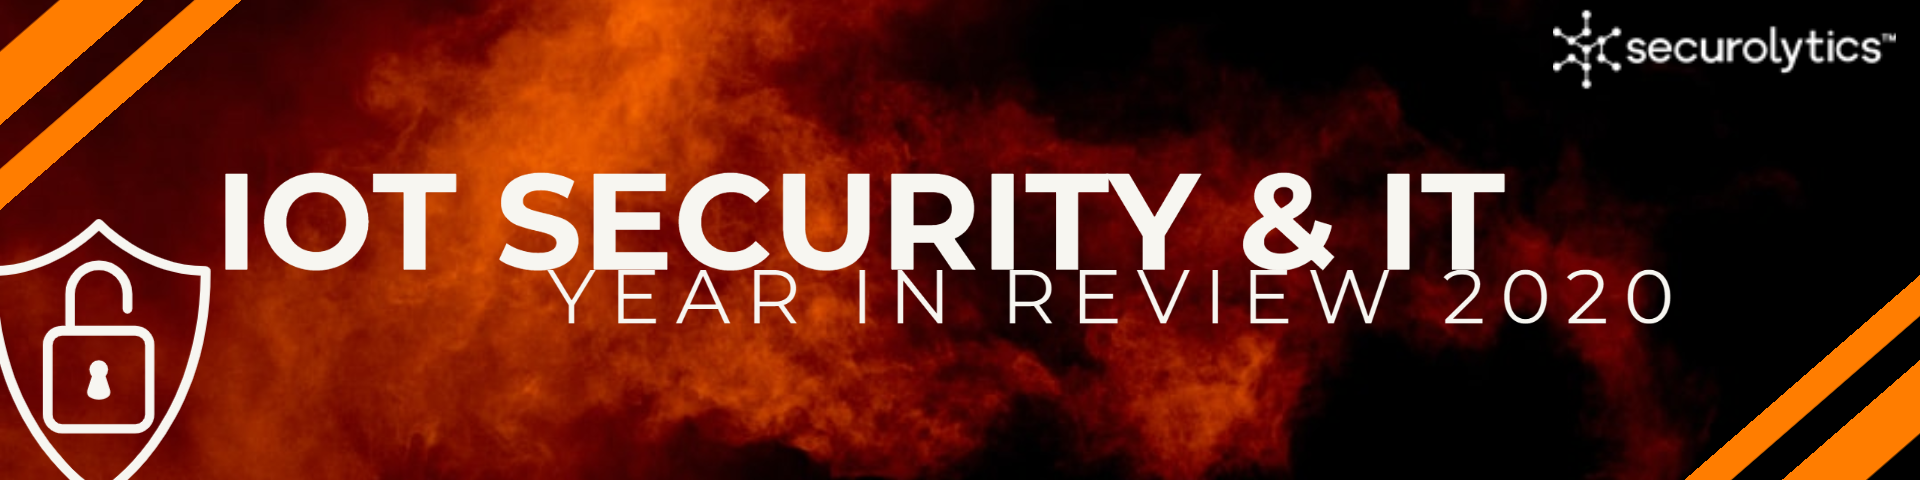 IoT Security 2020 Year in Review